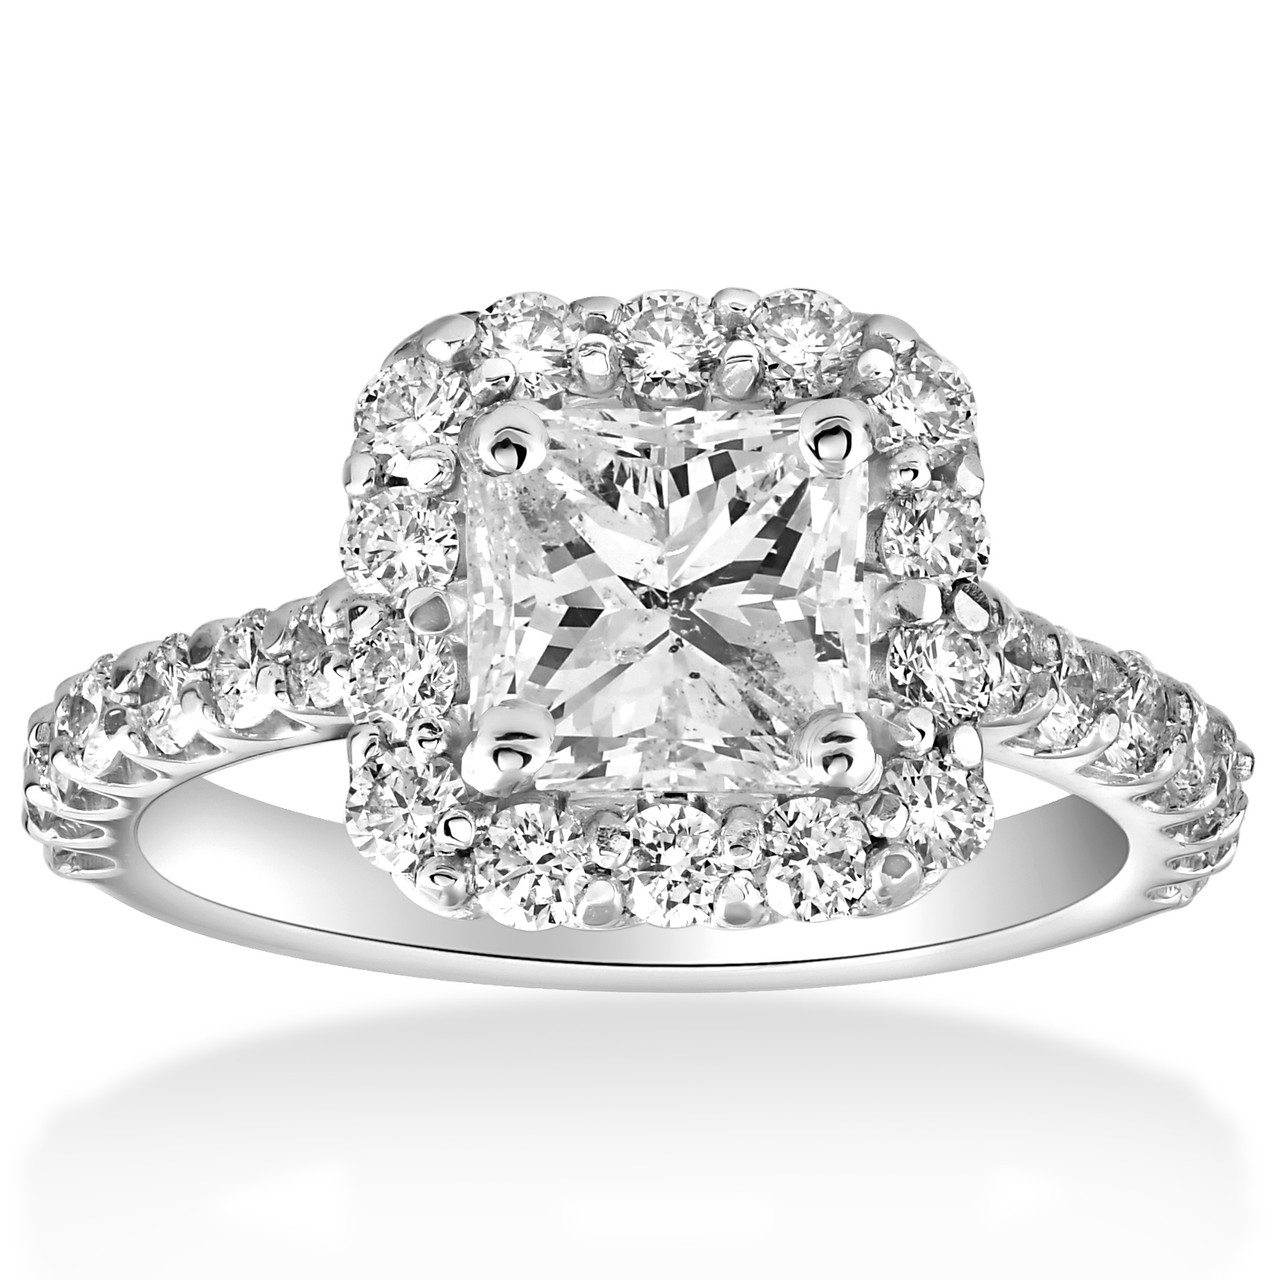 2 Cttw Halo Princess Square Cut Diamond Engagement Ring 14k White Gold Gh Si1 Si2